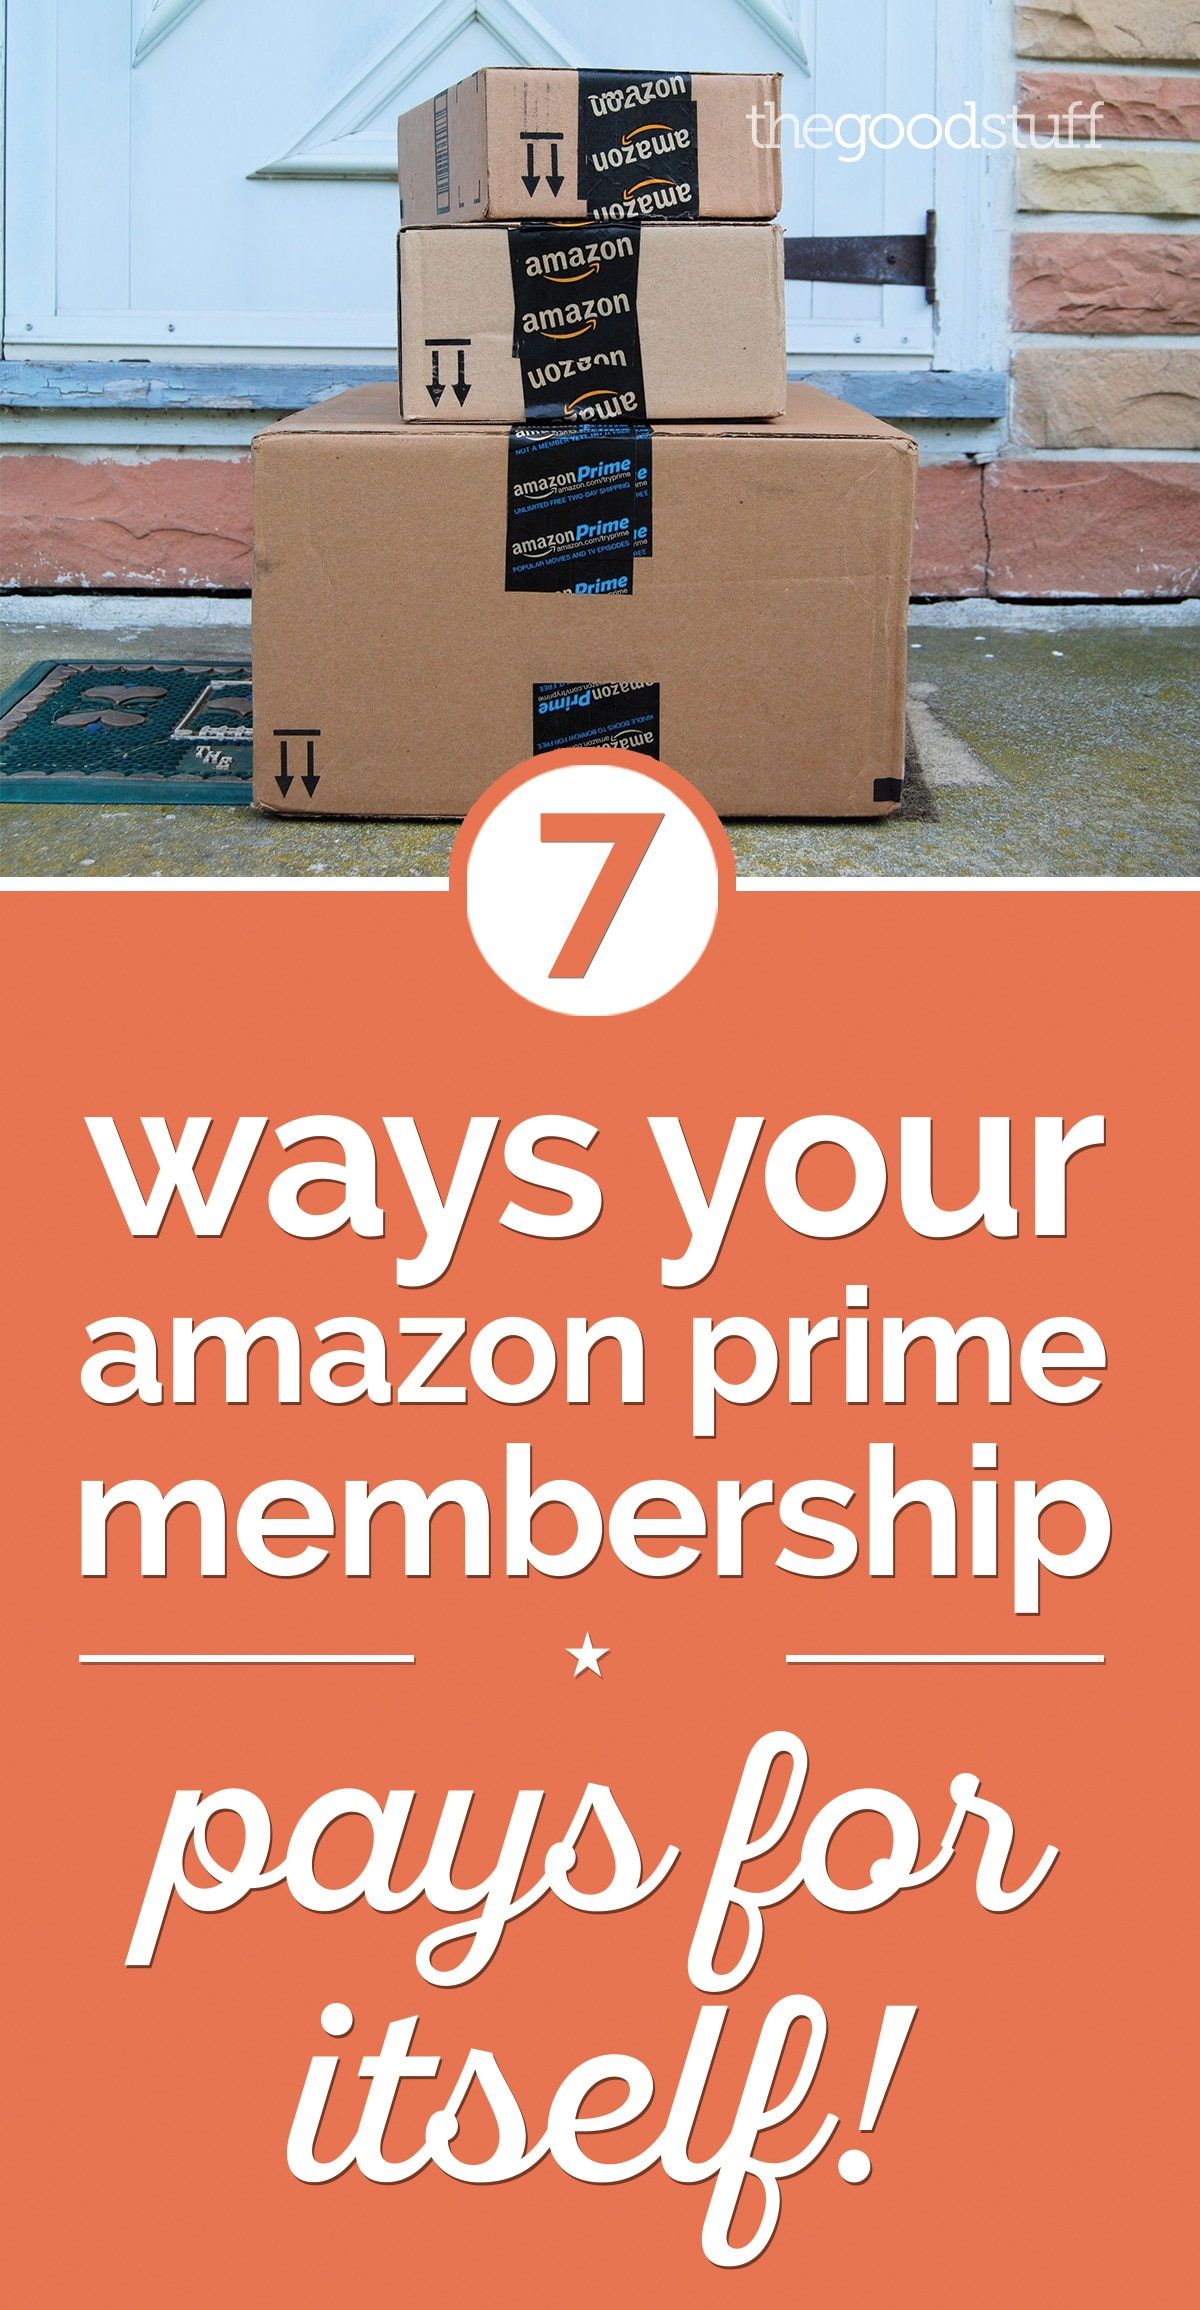 7 Ways Your Amazon Prime Membership Pays for Itself | thegoodstuff